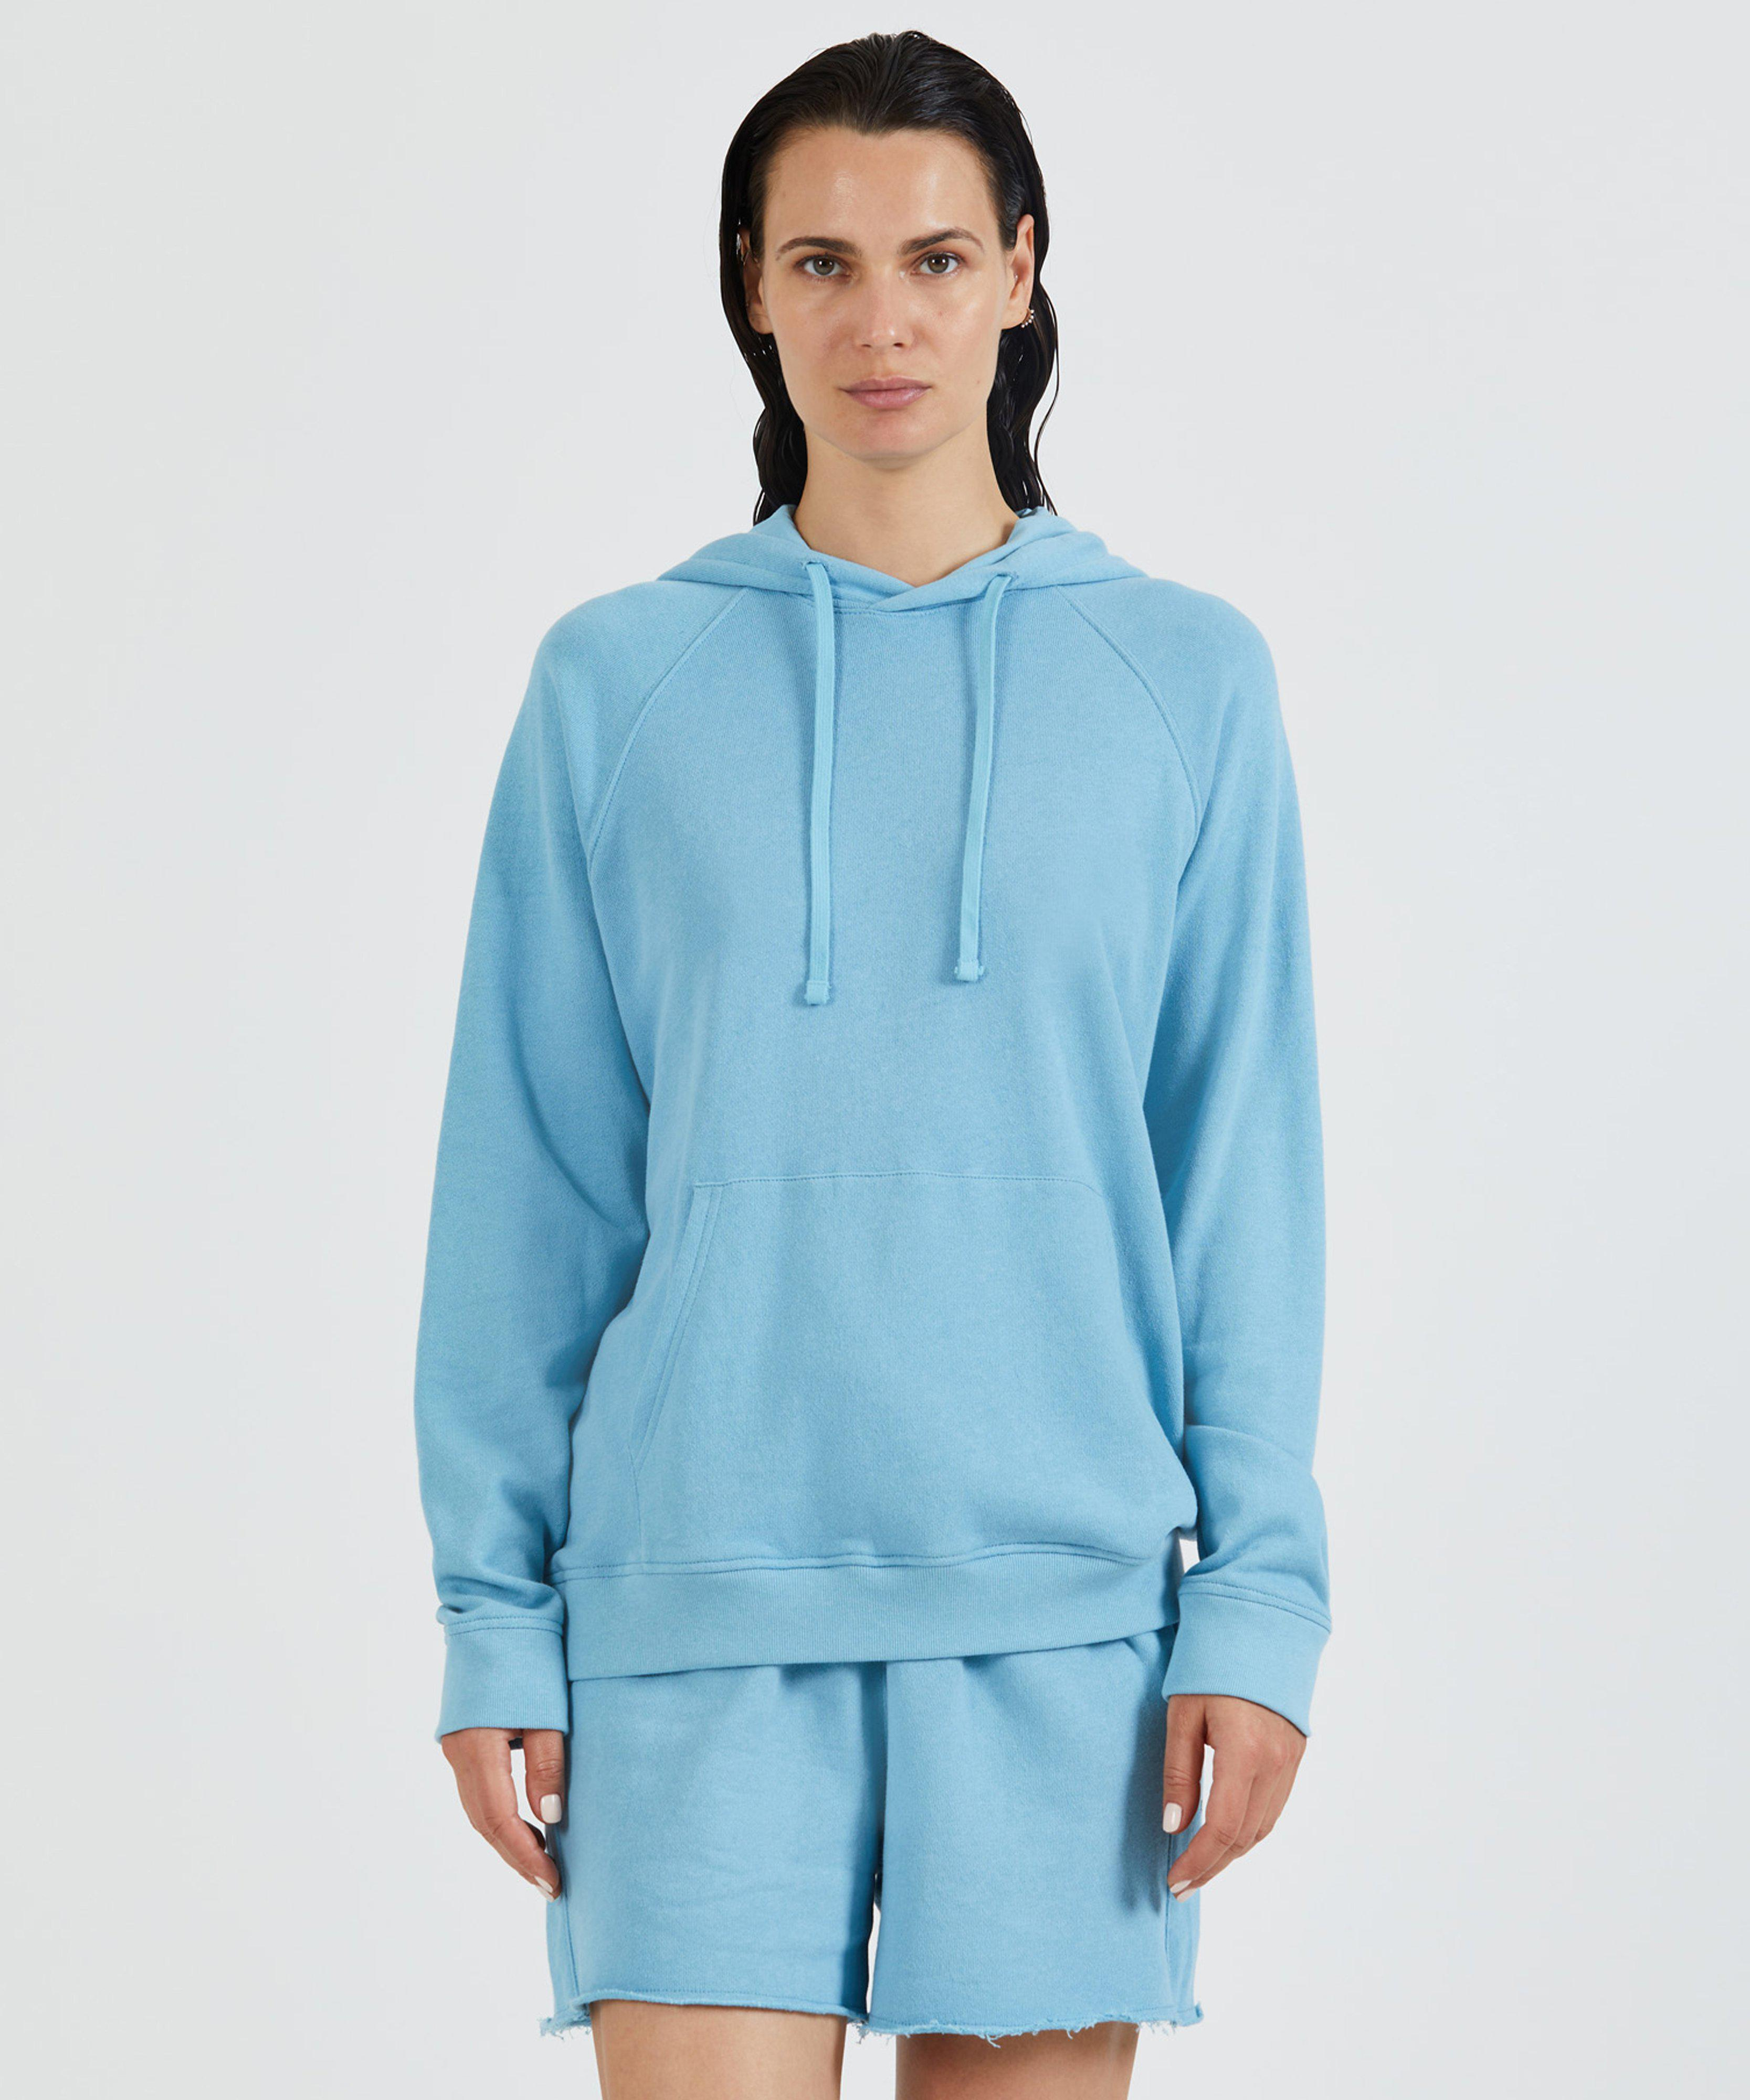 French Terry Pull-Over Hoodie - Ocean Blue